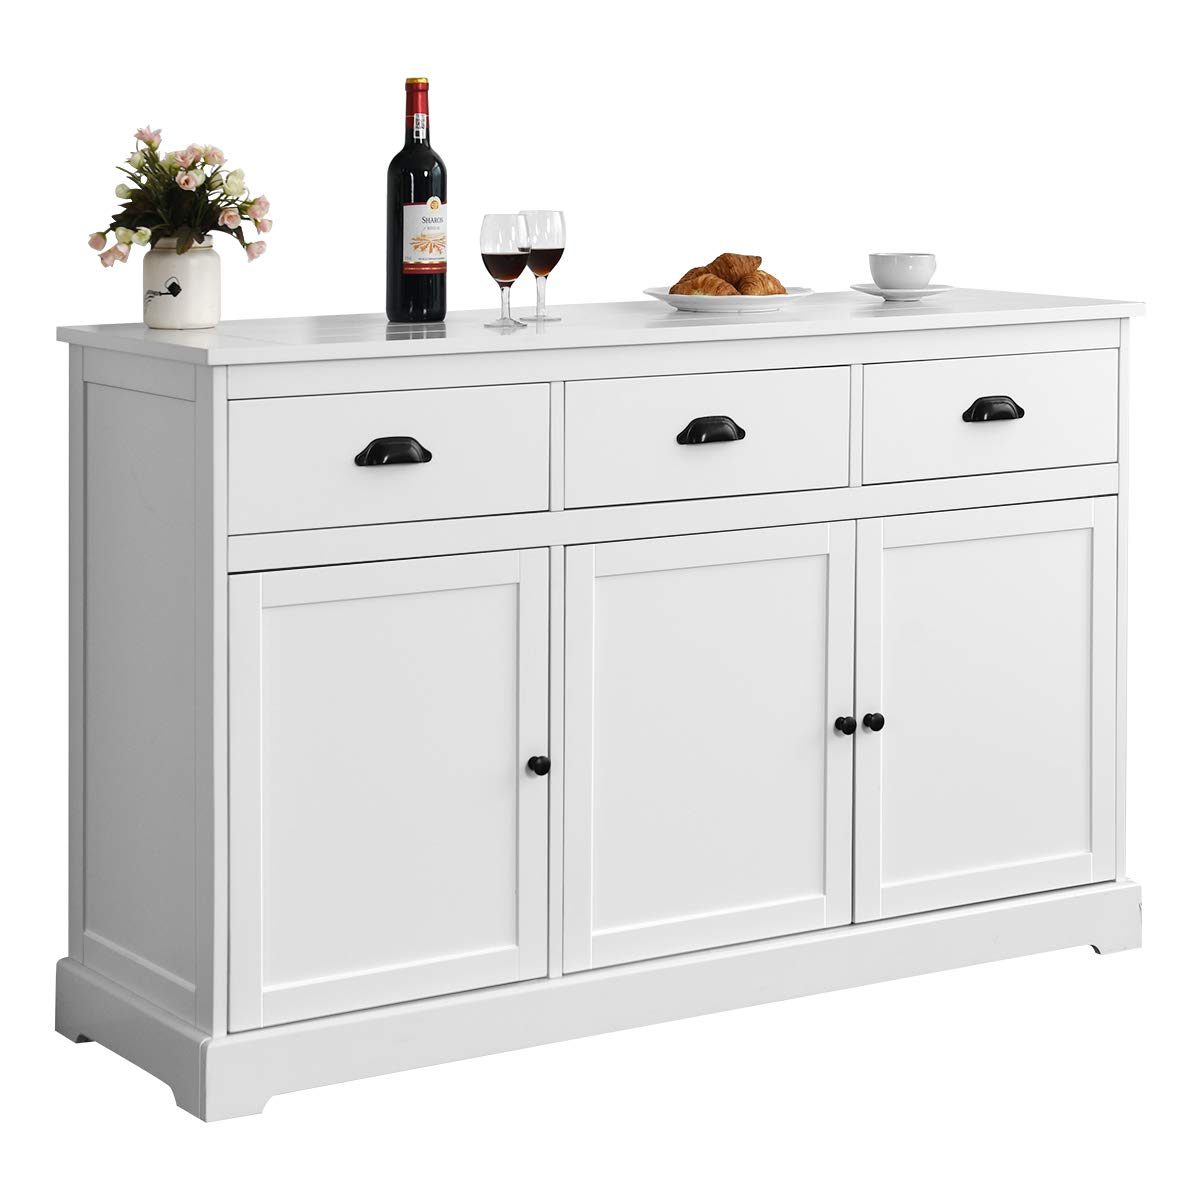 Giantex Sideboard Buffet Server Storage Cabinet Console Table Home Kitchen Dining Room Furniture Entryway Cupboard with 2 Cabinets and 3 Drawers Adjustable Shelves, White (White) by Giantex (Image #1)